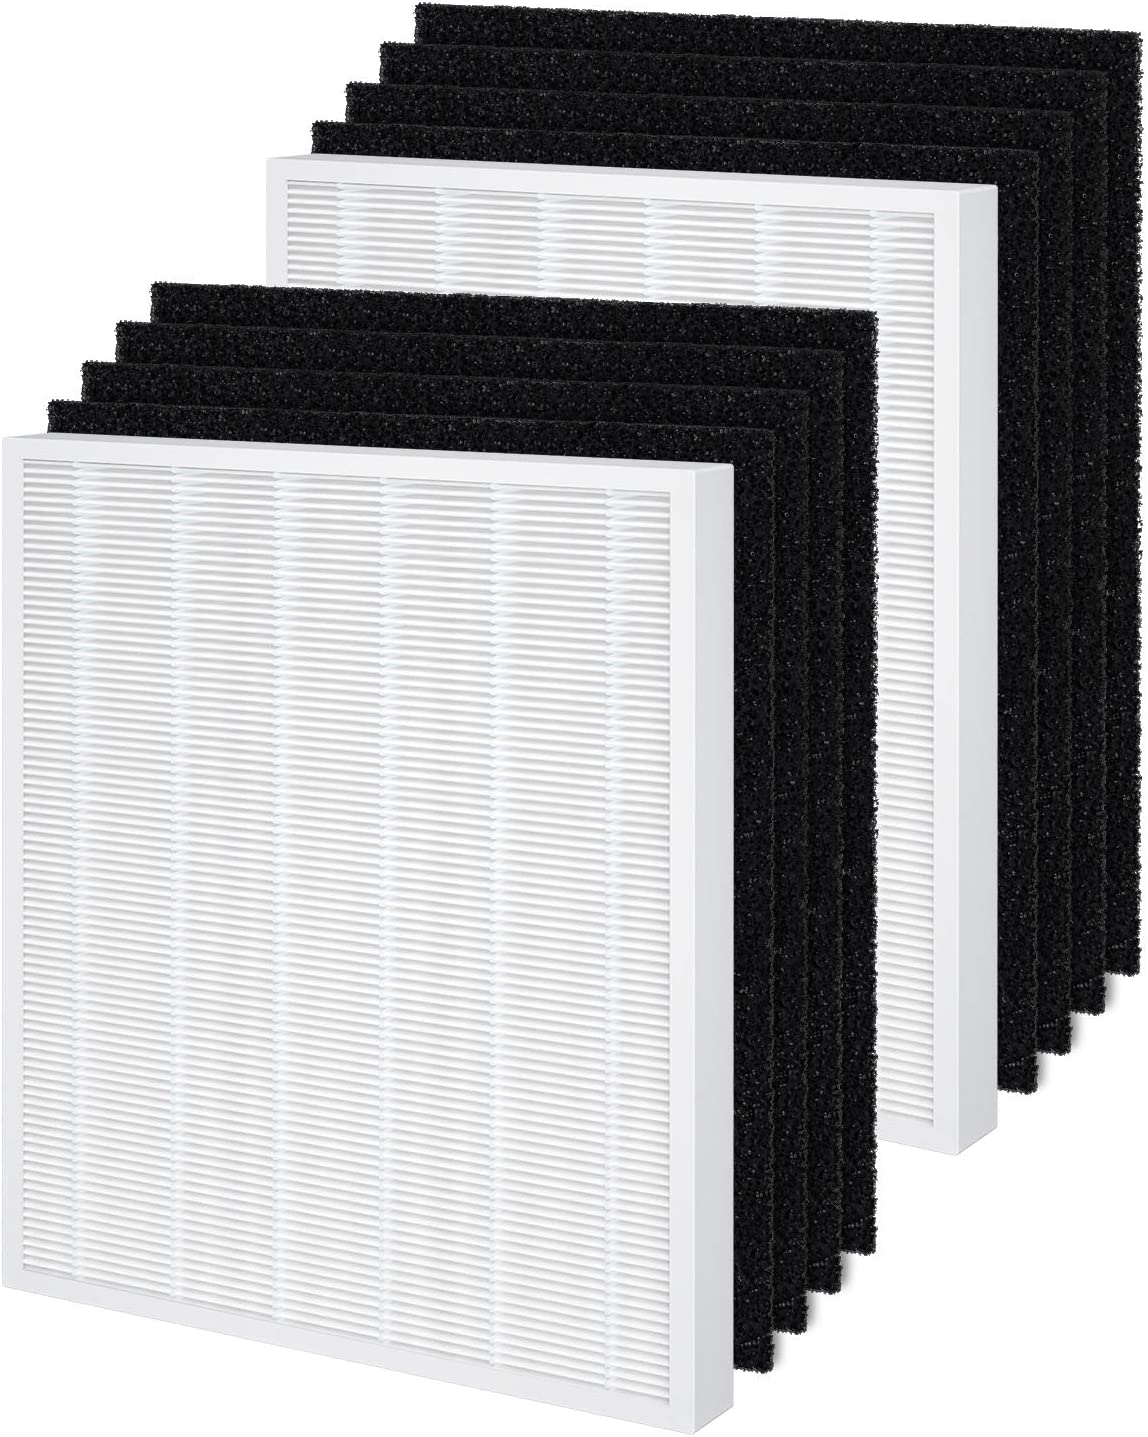 Killer Filter Replacement for PURFLUX CS152 Pack of 3